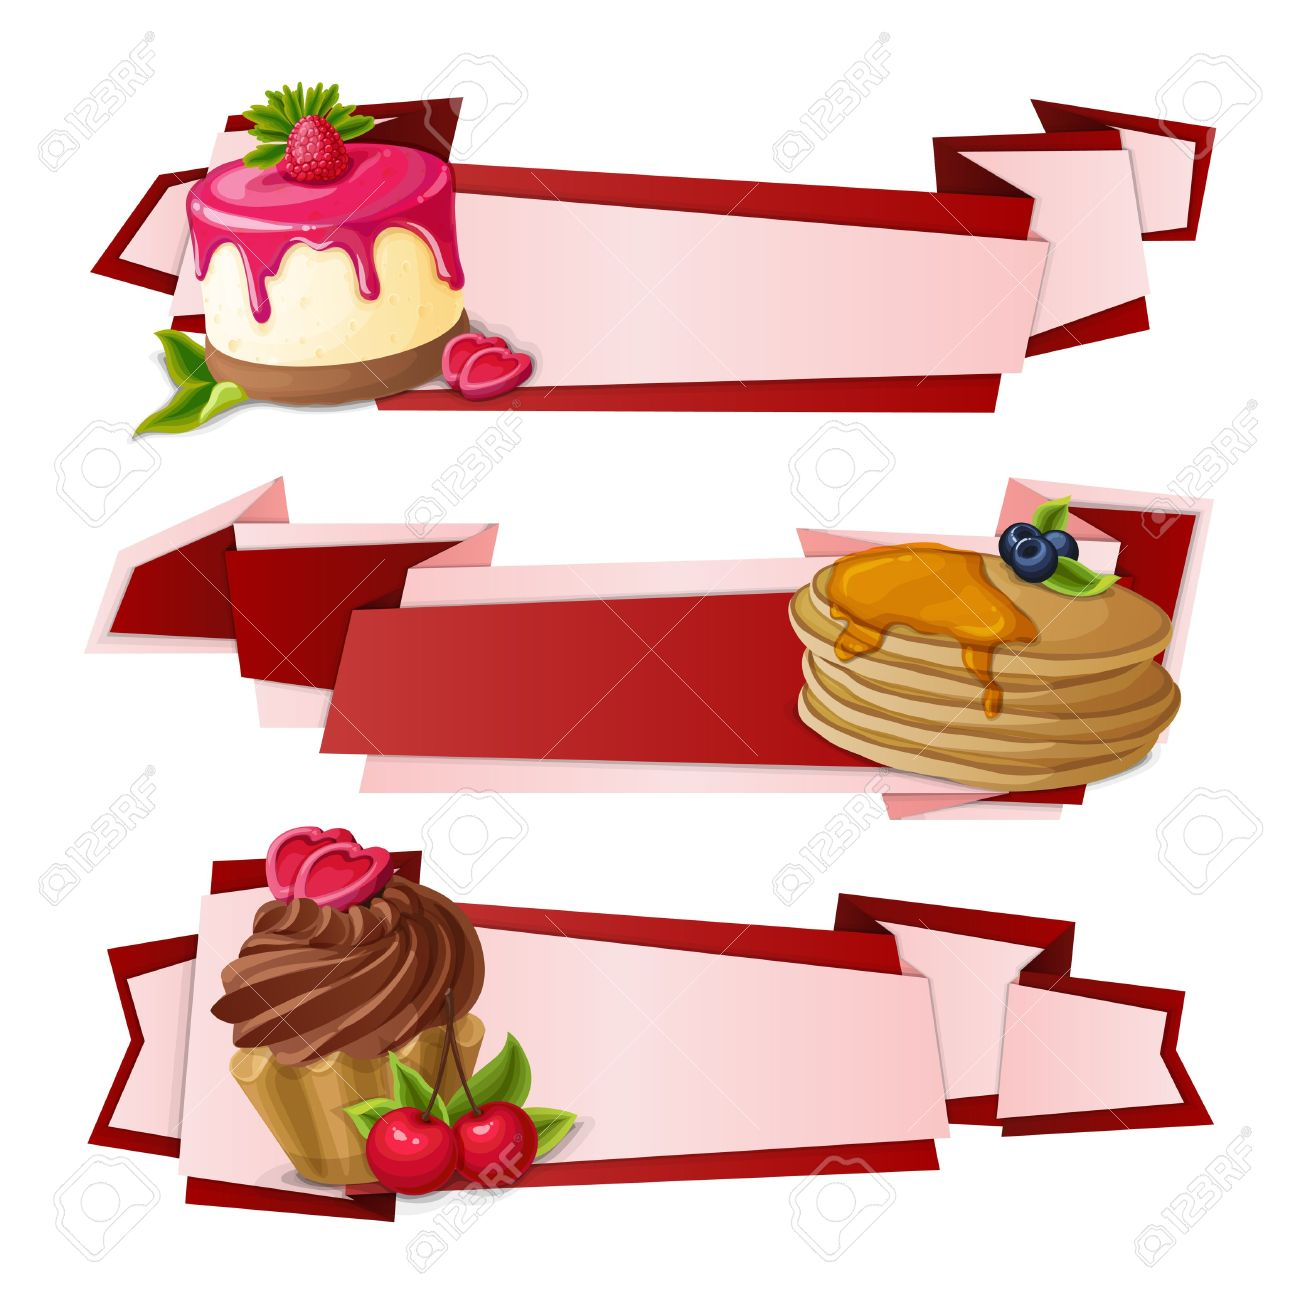 Decorative Sweets Food Paper Banners Set With Raspberry Pudding.